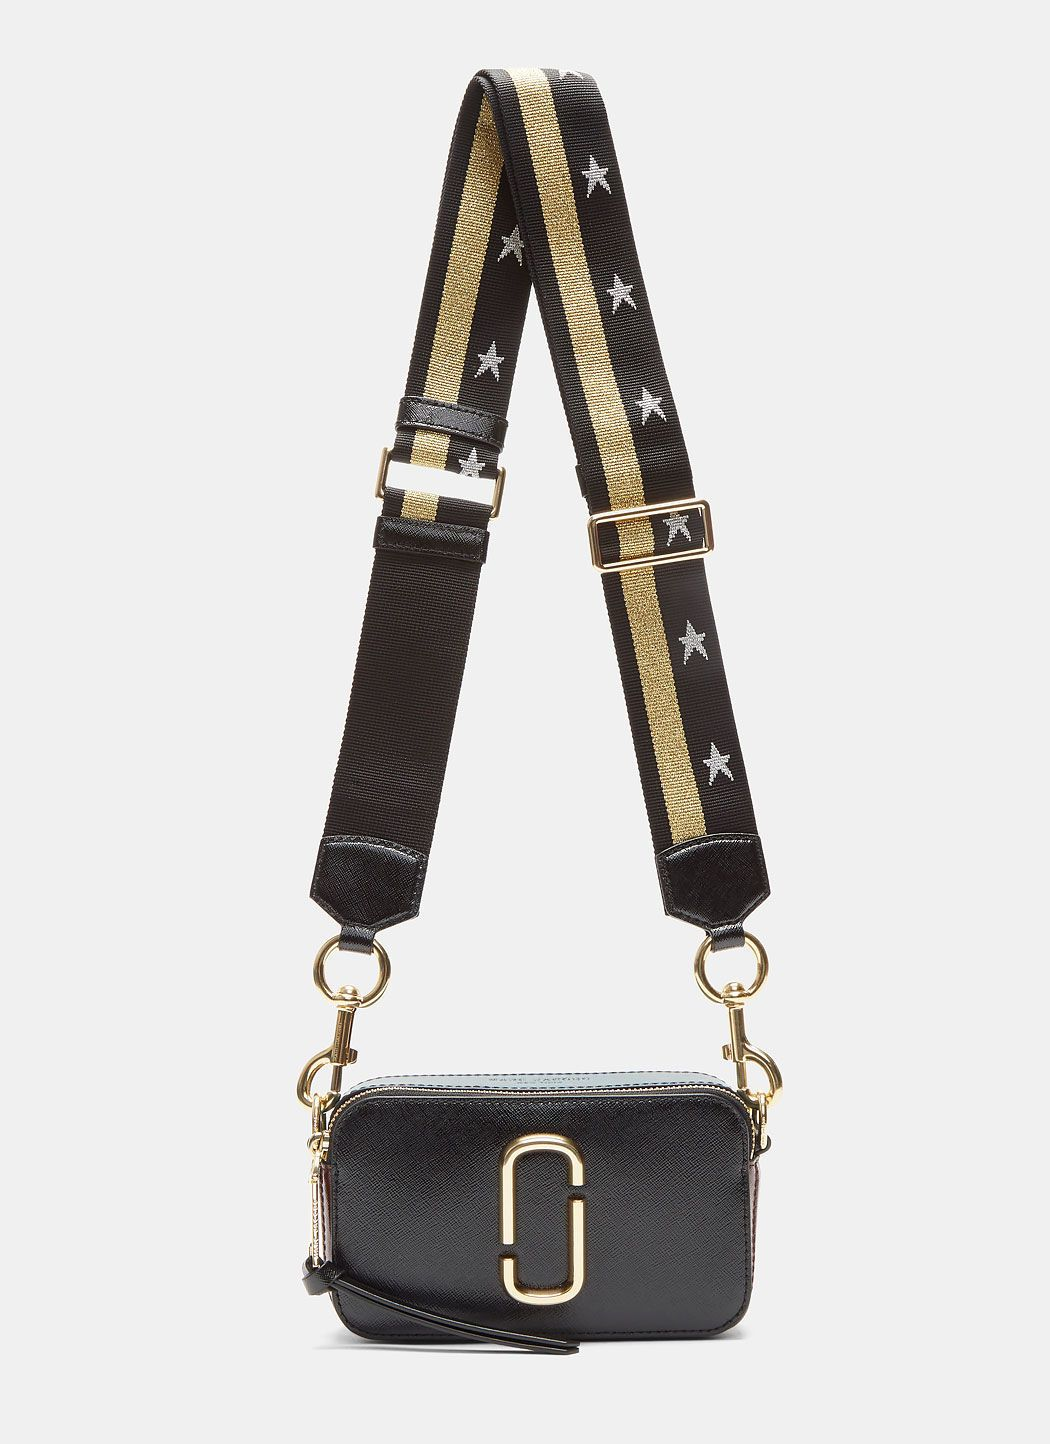 MARC JACOBS Women S Snapshot Star Strapped Crossbody Camera Bag In Black.   marcjacobs  bags  shoulder bags  leather  crossbody  metallic   15a8d2a74aebb